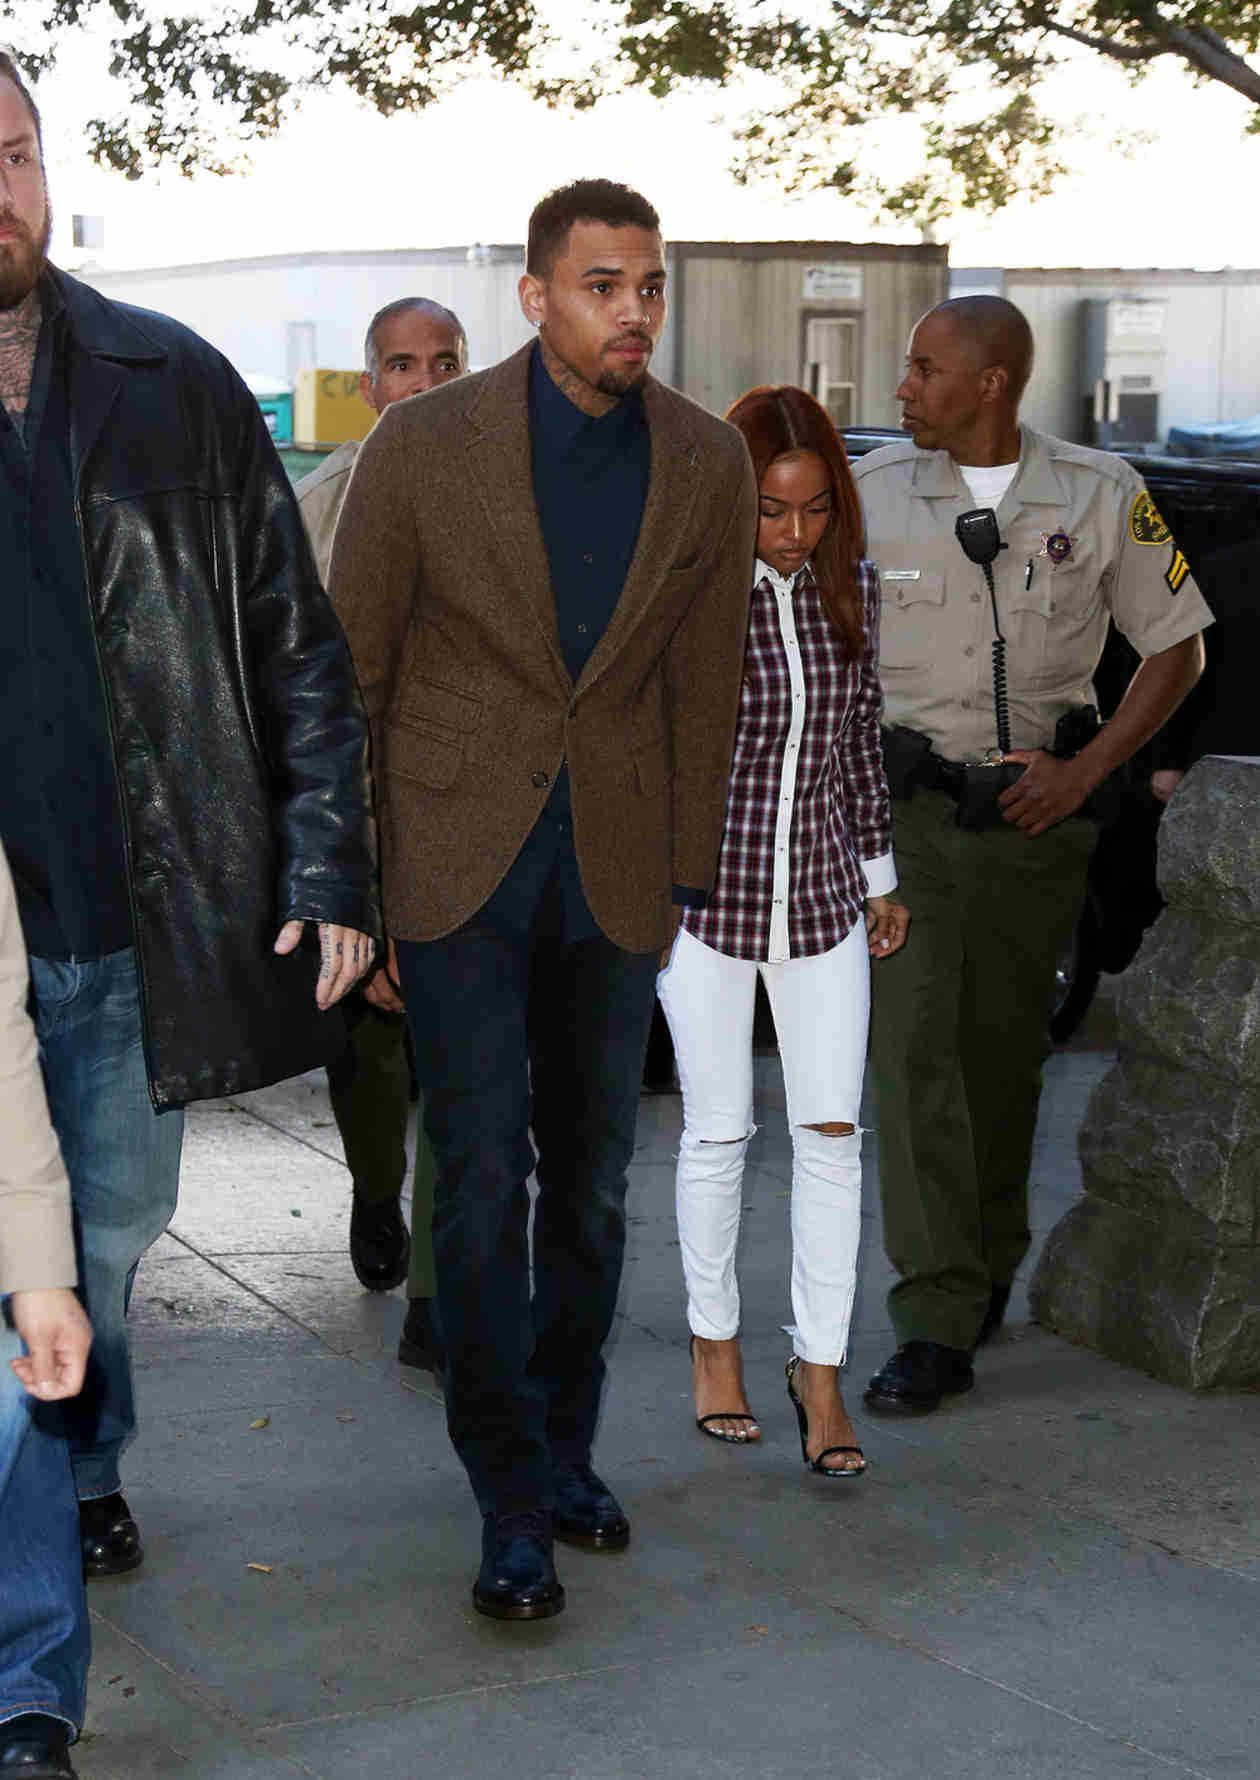 """Chris Brown Thrown Out of Rehab After """"Inappropriate Relationship"""" — Report (VIDEO)"""